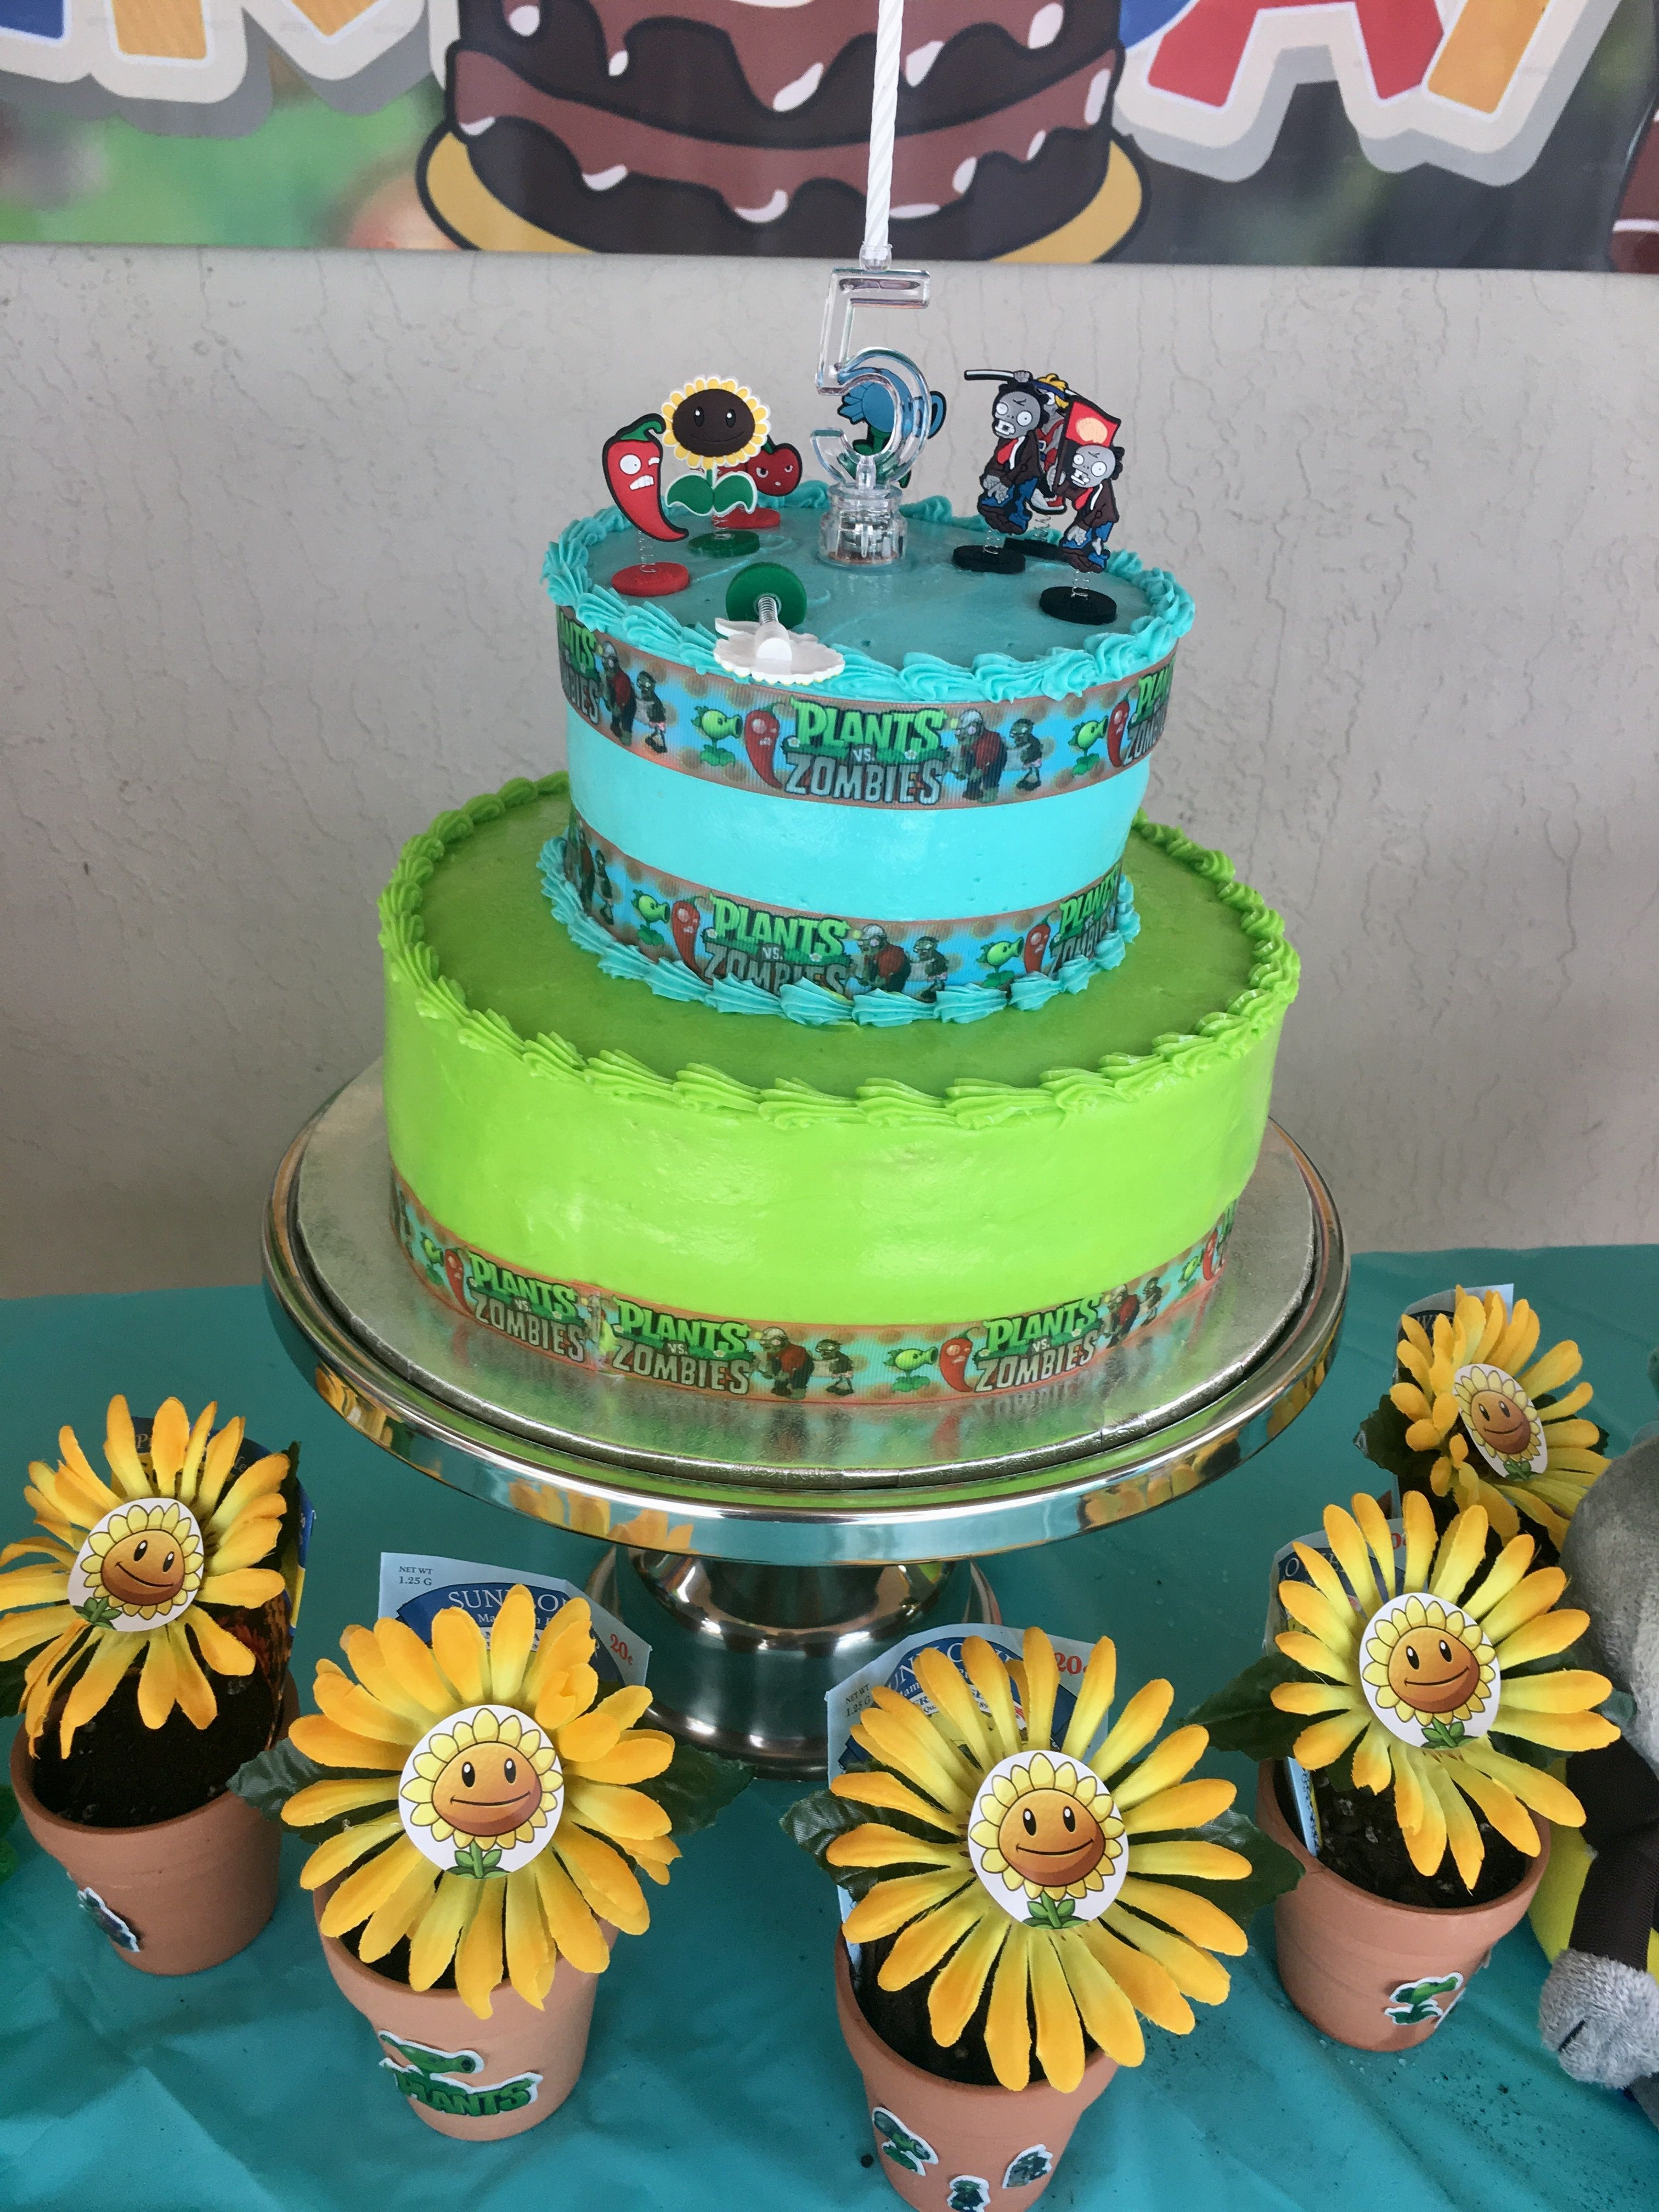 My sons plants v zombies pool birthday party Cake from Walmart